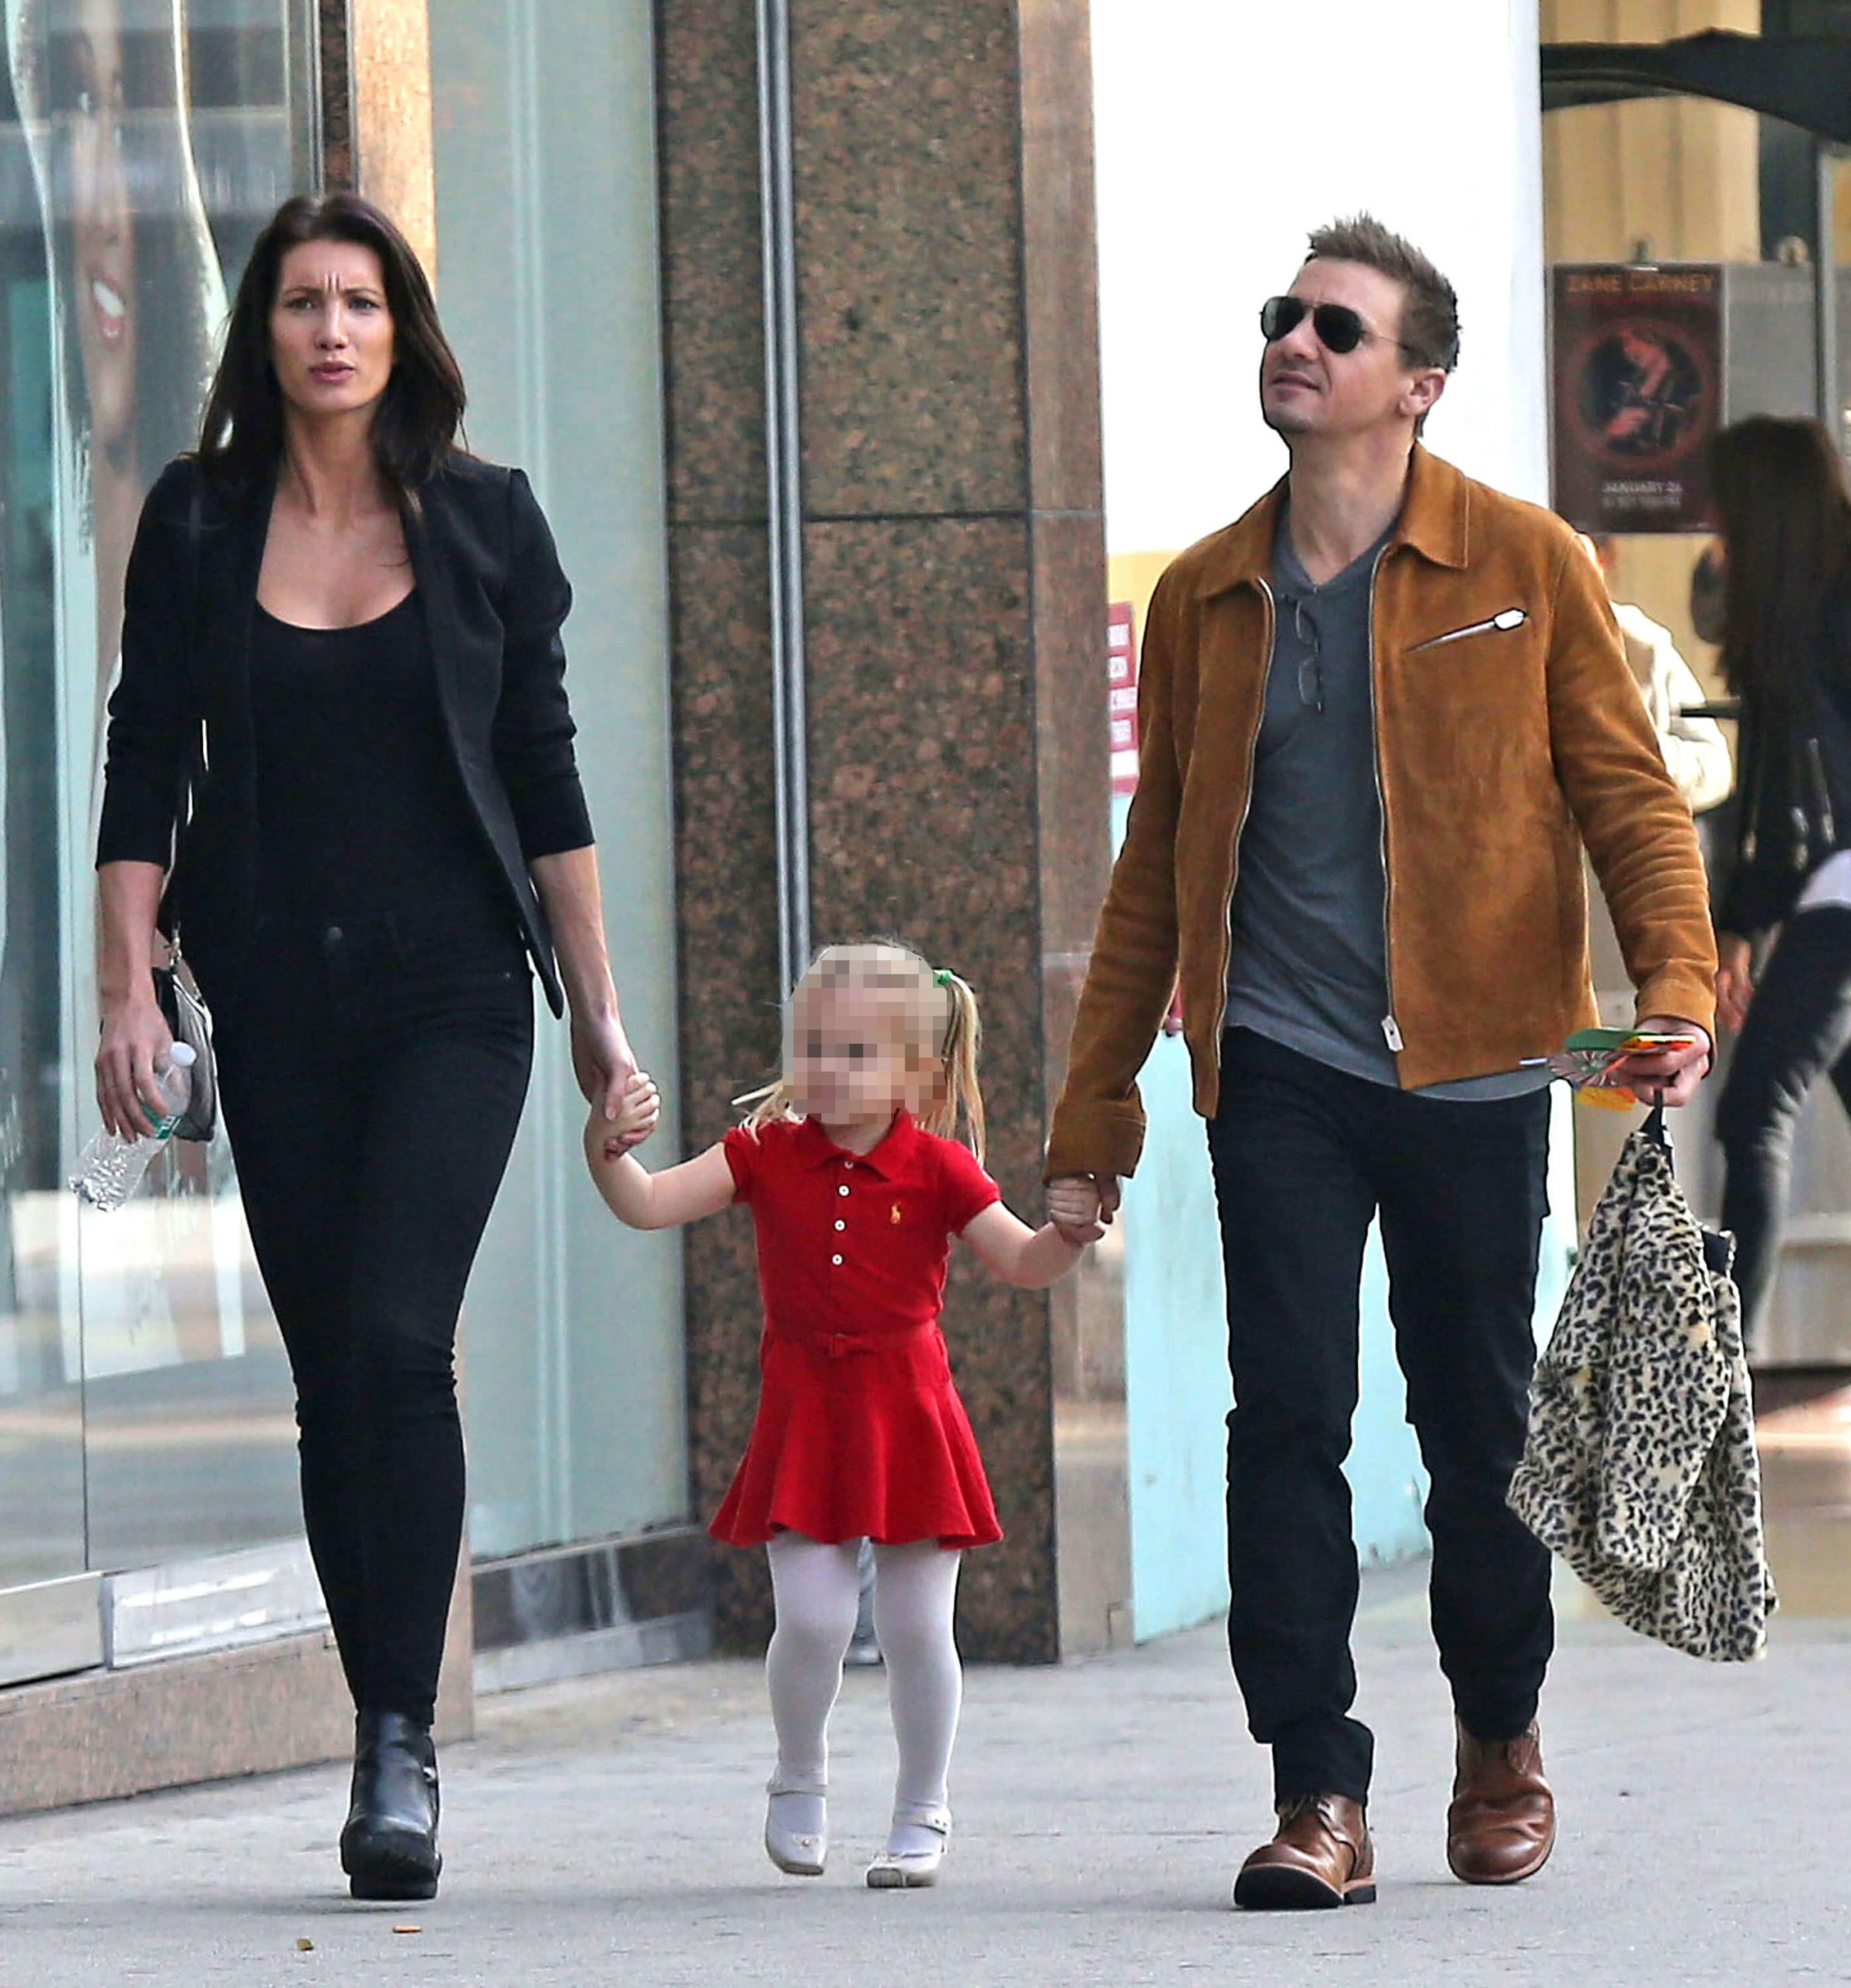 Pacheco, Ava and Renner